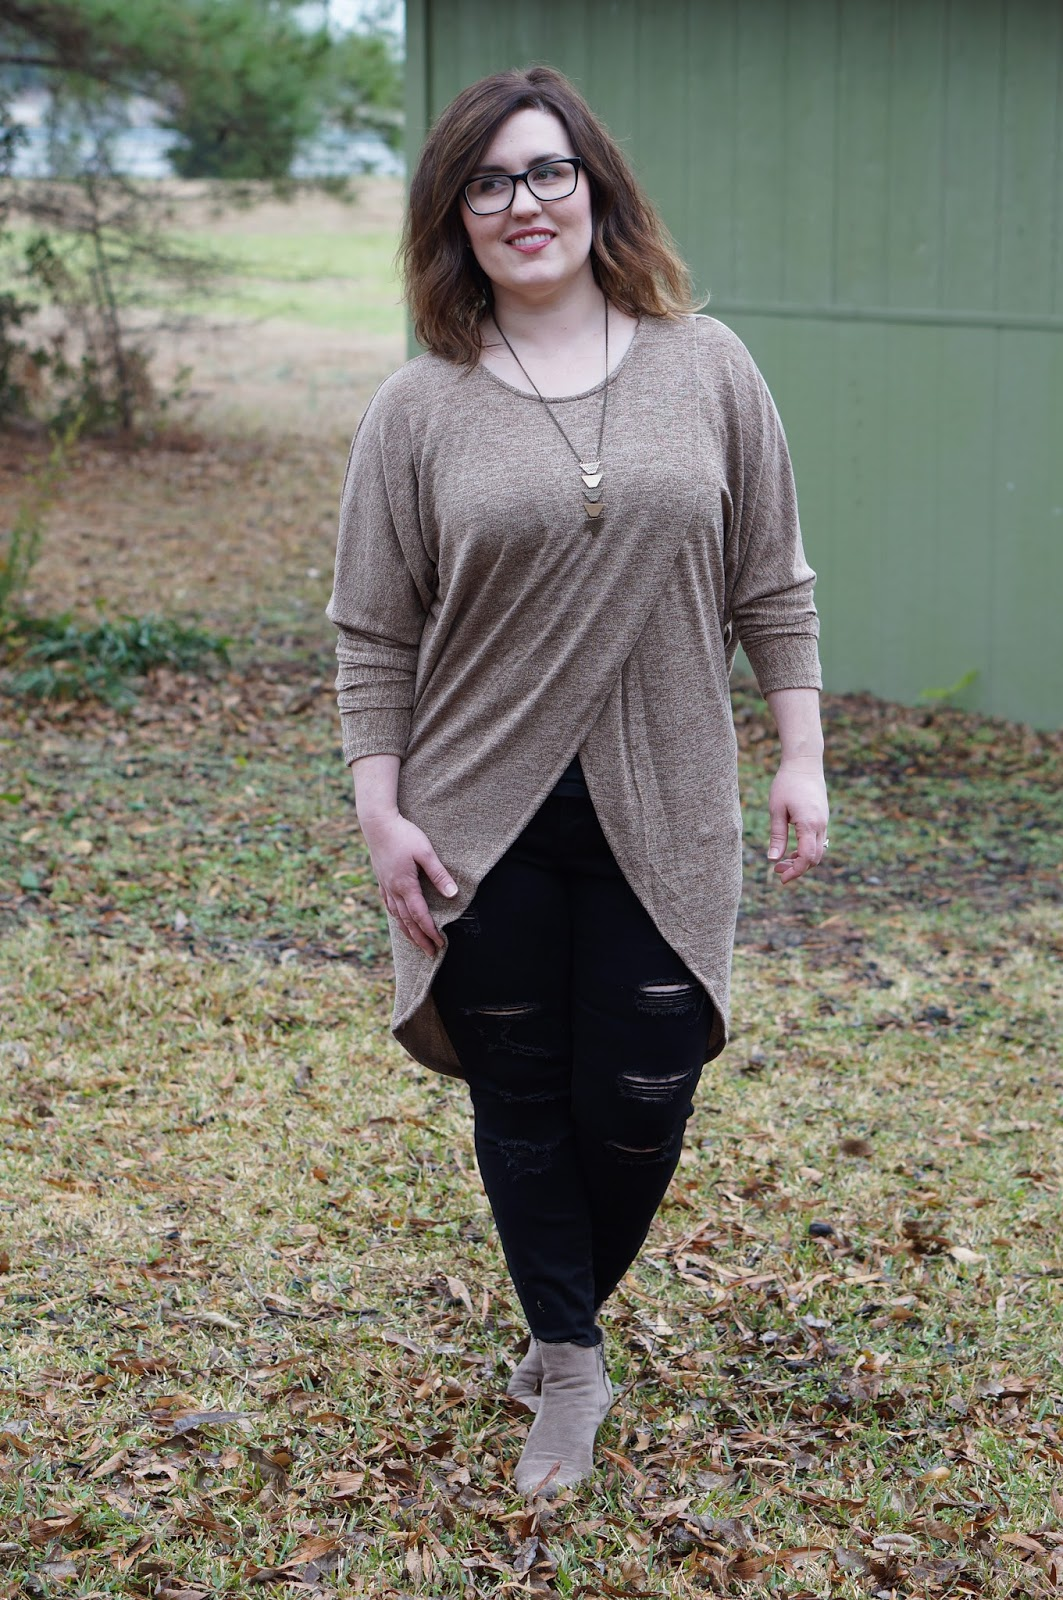 Rebecca Lately Dress Lily Batwing Sweater Old Navy Rockstar Raw-Edge Mid-Rise Jeans Taupe Suede Booties